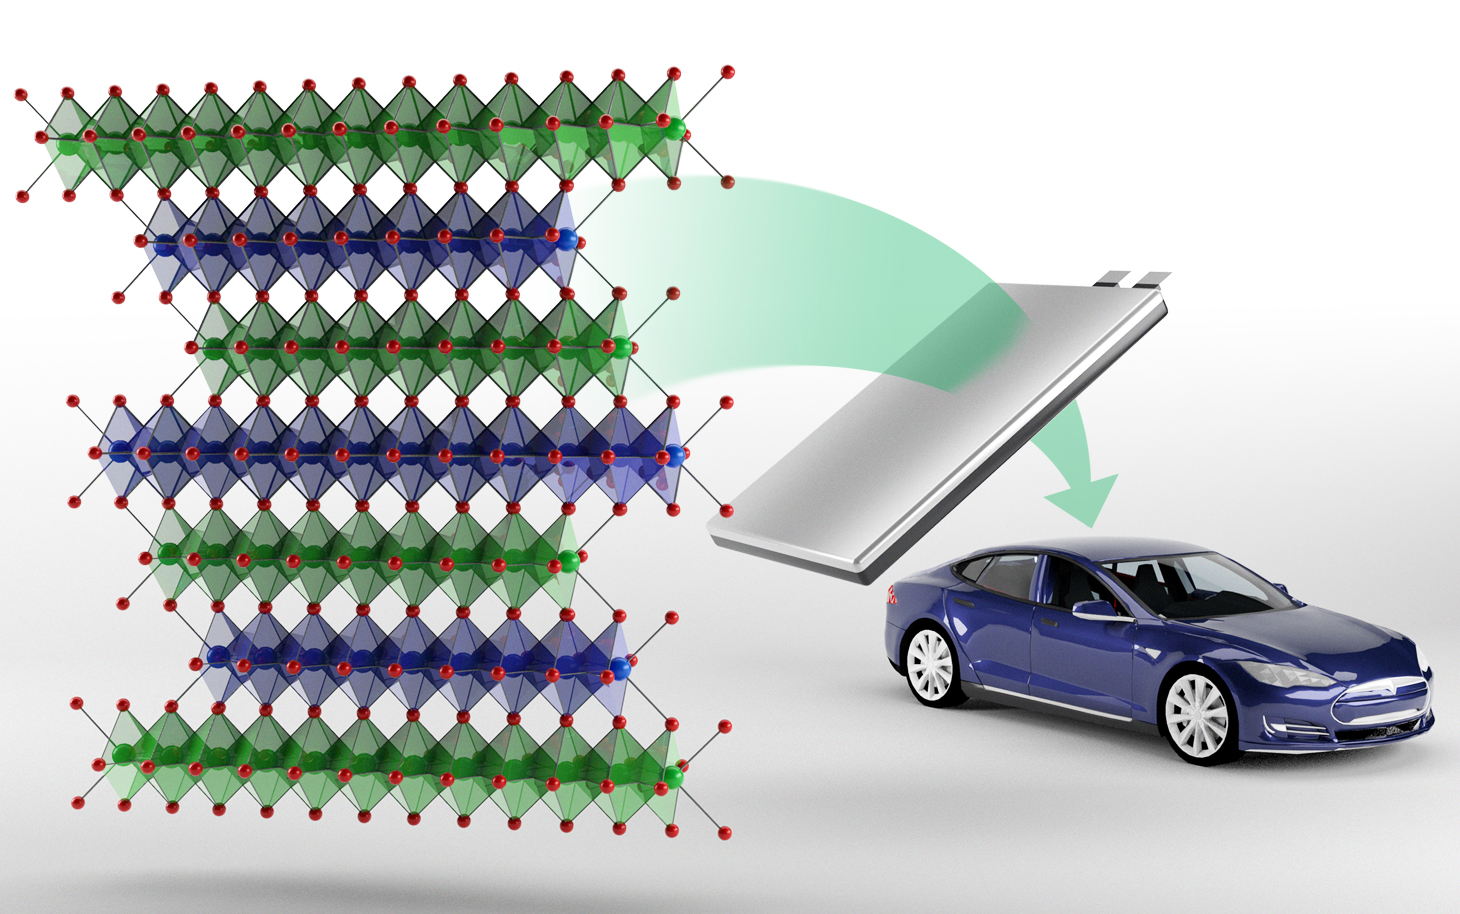 Cobalt Banished From New Electric Vehicle Batteries